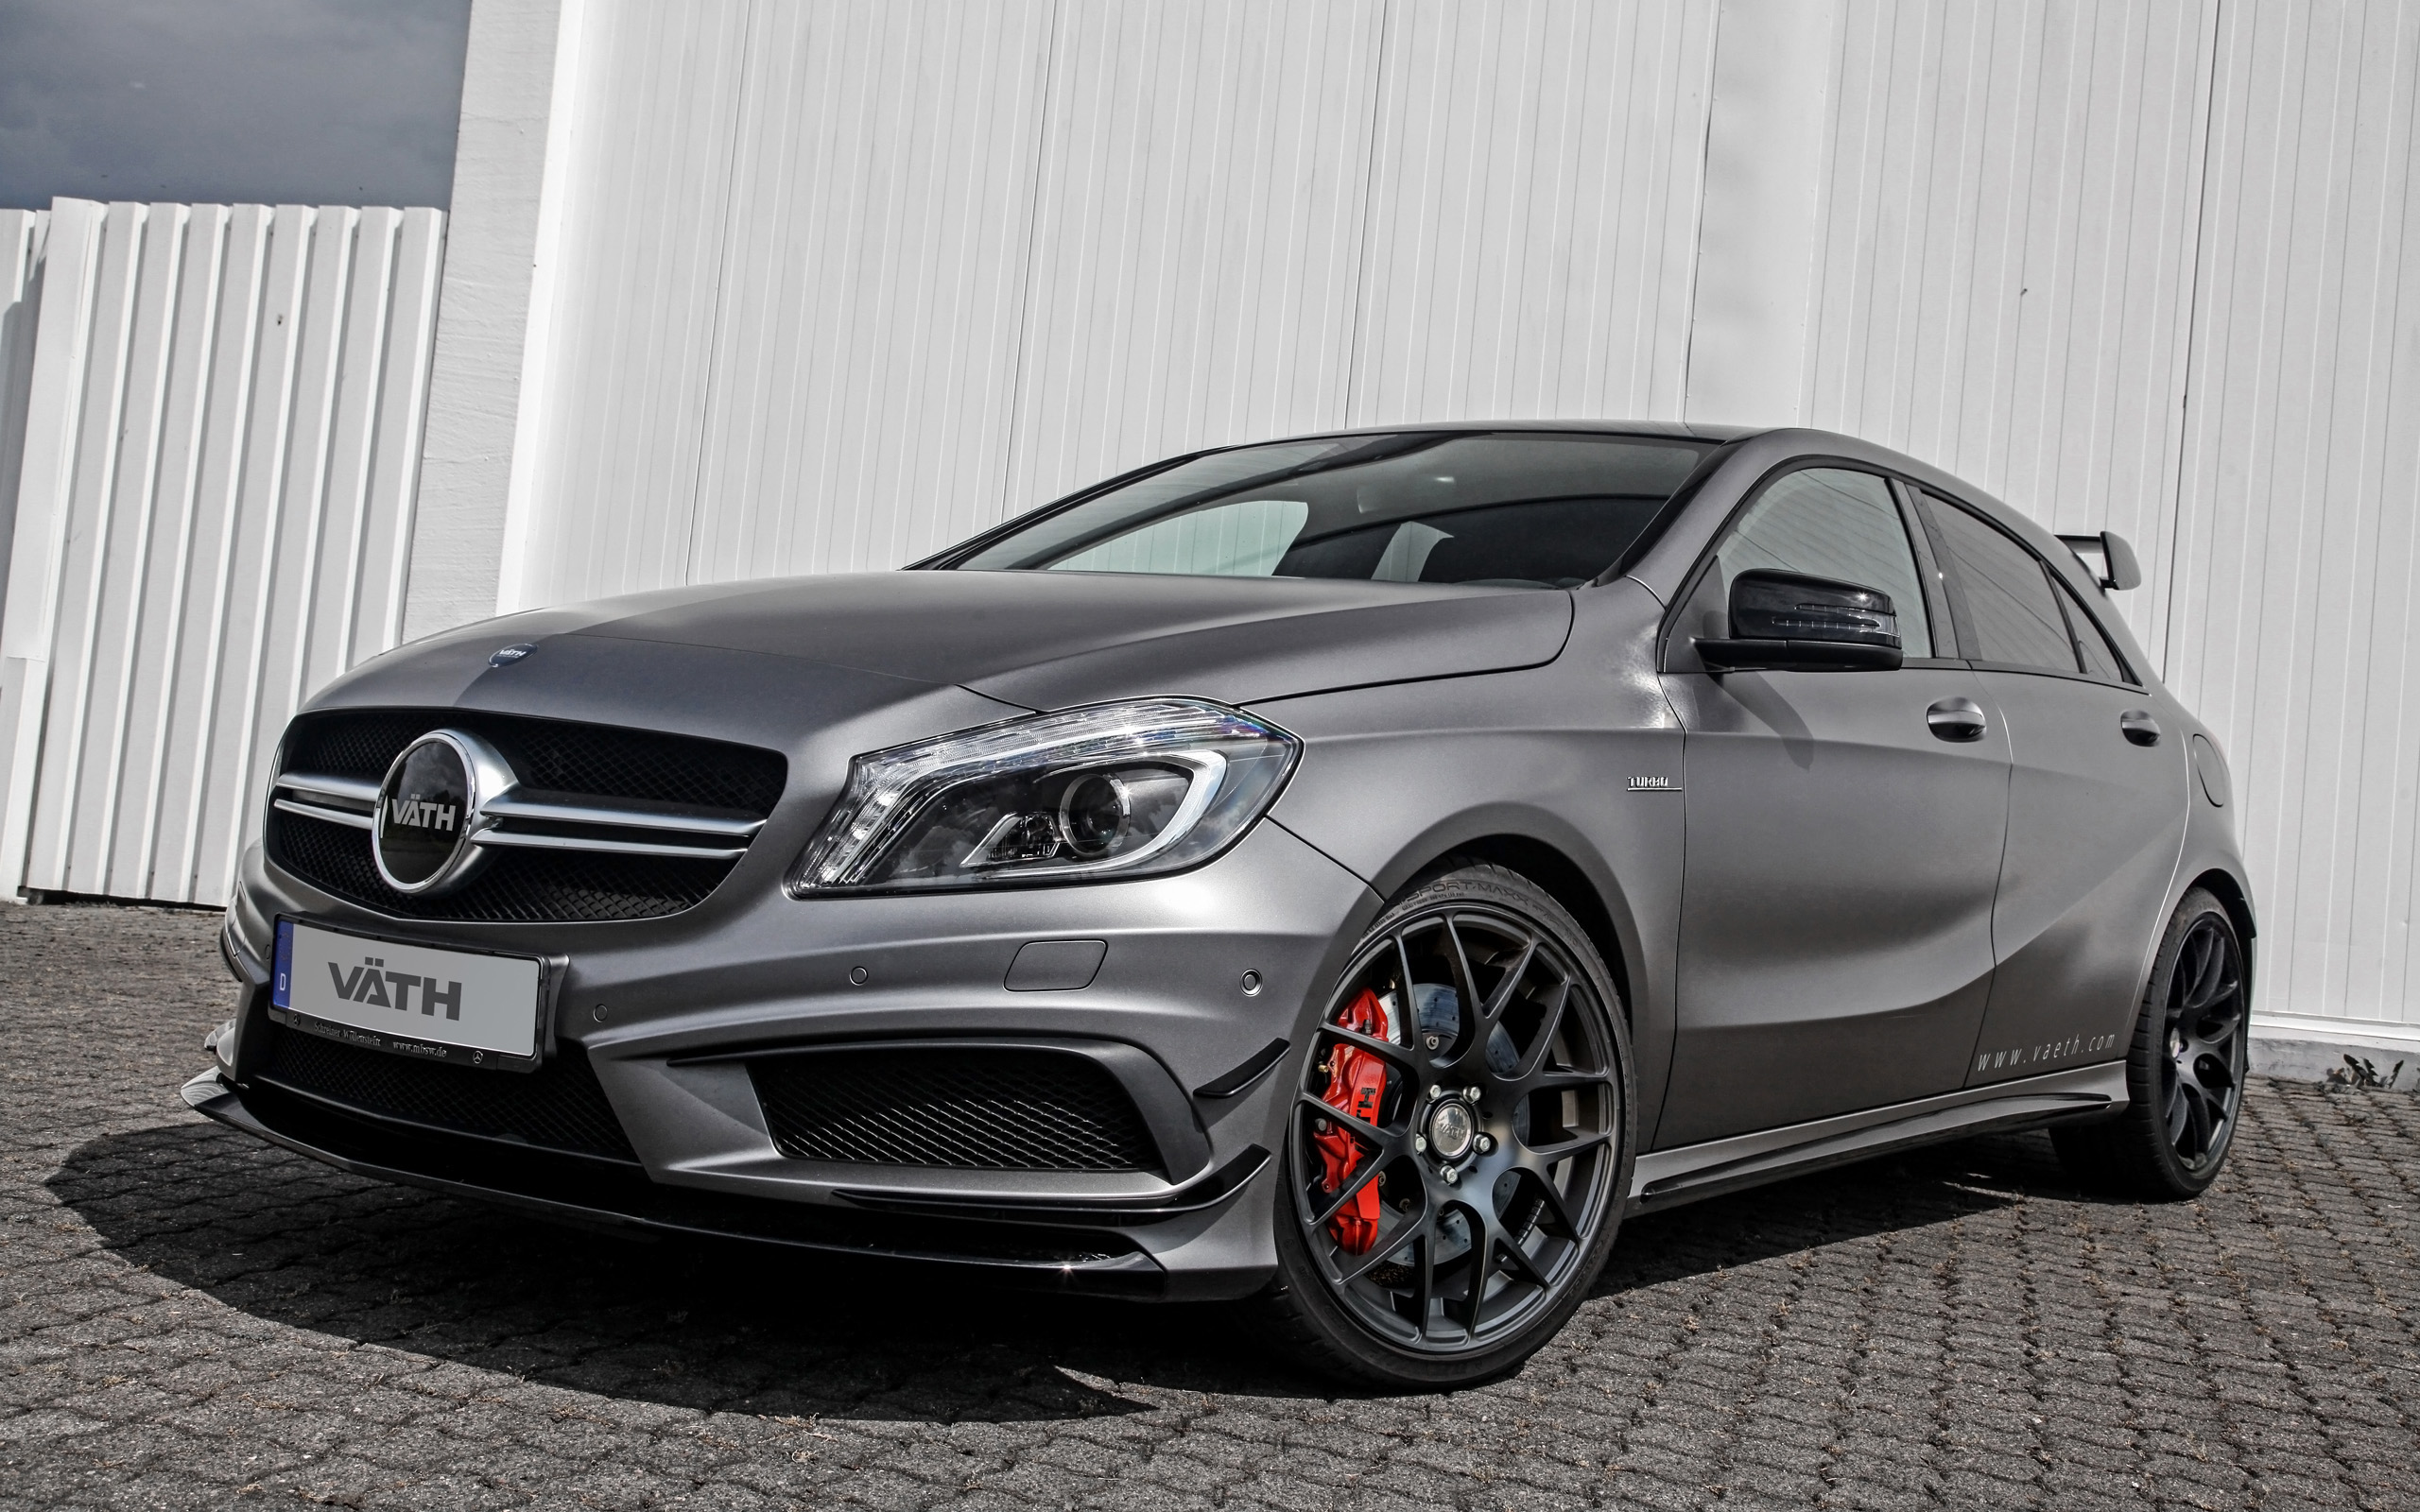 2014 vaeth mercedes benz a45 amg wallpaper hd car for Mercedes benz cars pictures